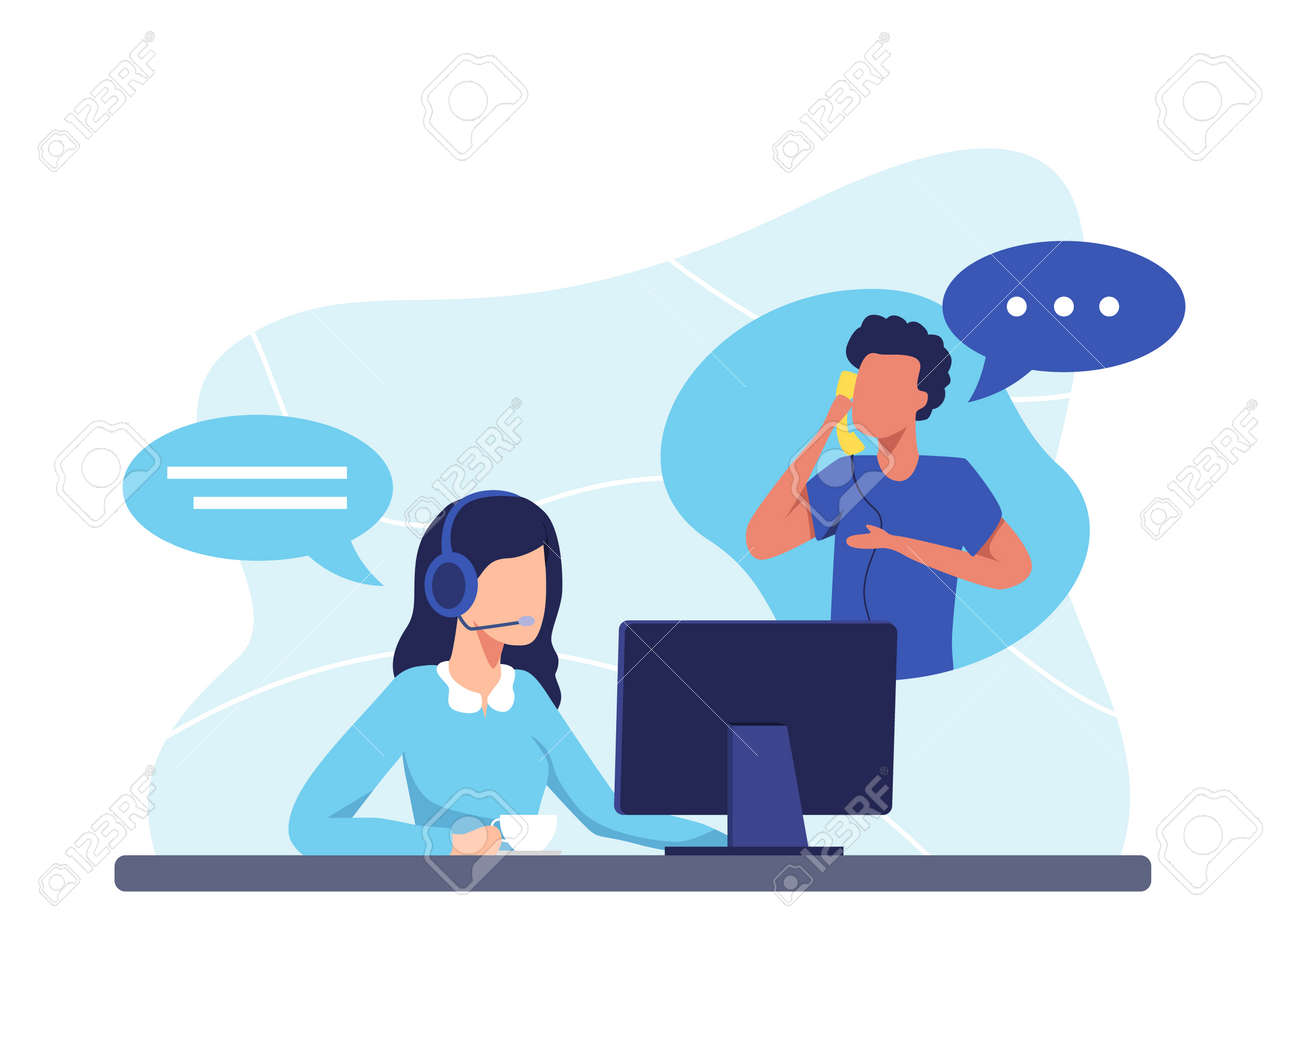 Female hotline operator advises client, Customer service, Customer and operator. Online global technical support 24 hours. Vector illustration in a flat style - 165418330